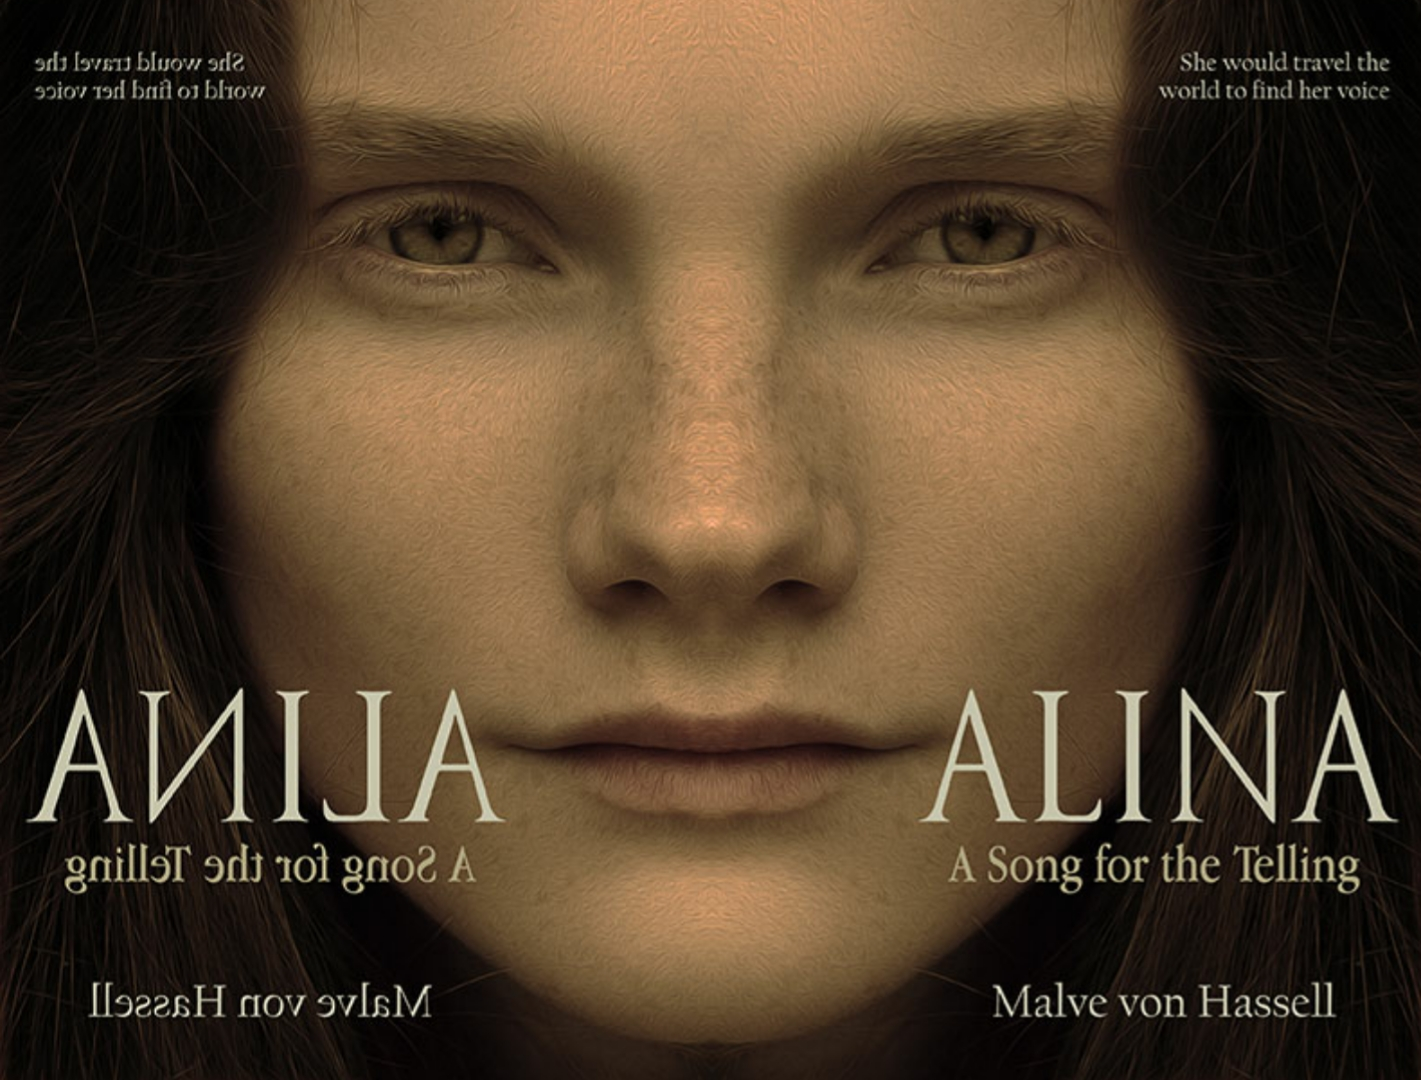 Book Review: Alina: A Song For The Telling – The Nightingale Breaking Free of Her Cage